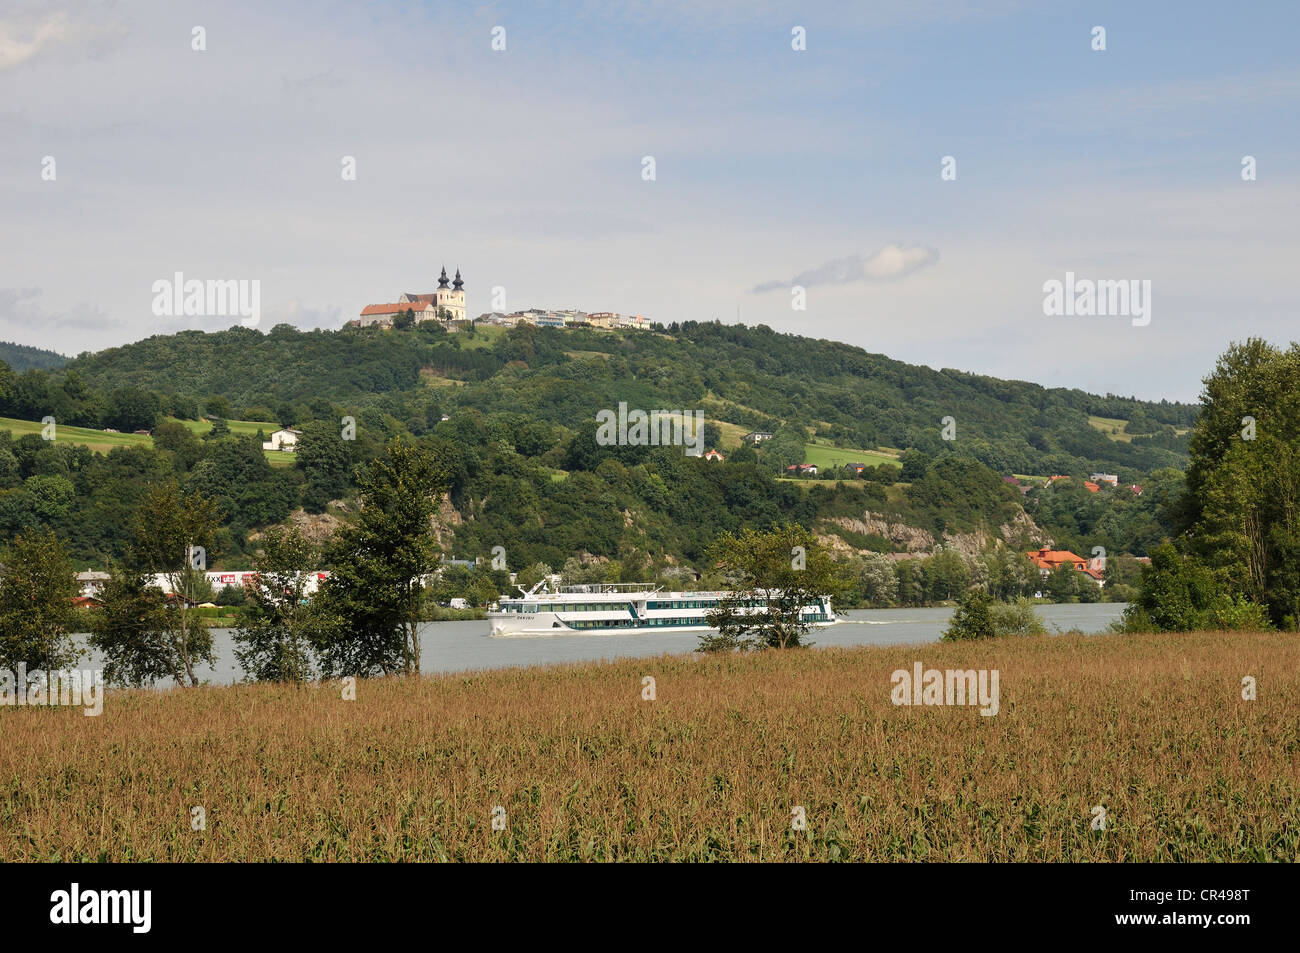 View over the Danube on the pilgrimage basilica in Maria Taferl, Lower Austria, Austria - Stock Image